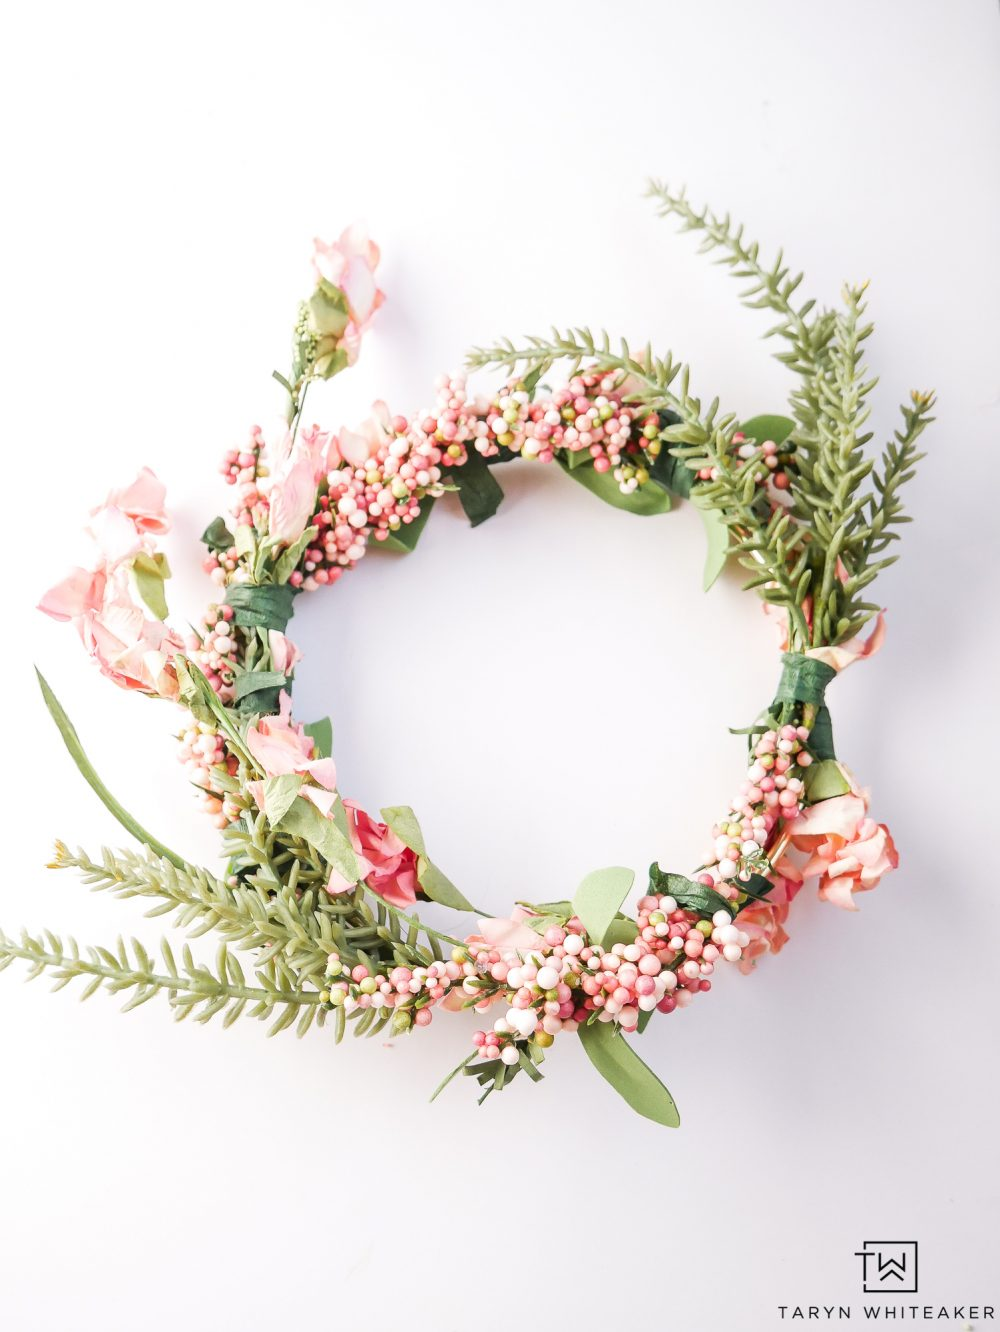 Make your own pink flower crowns for your next party!